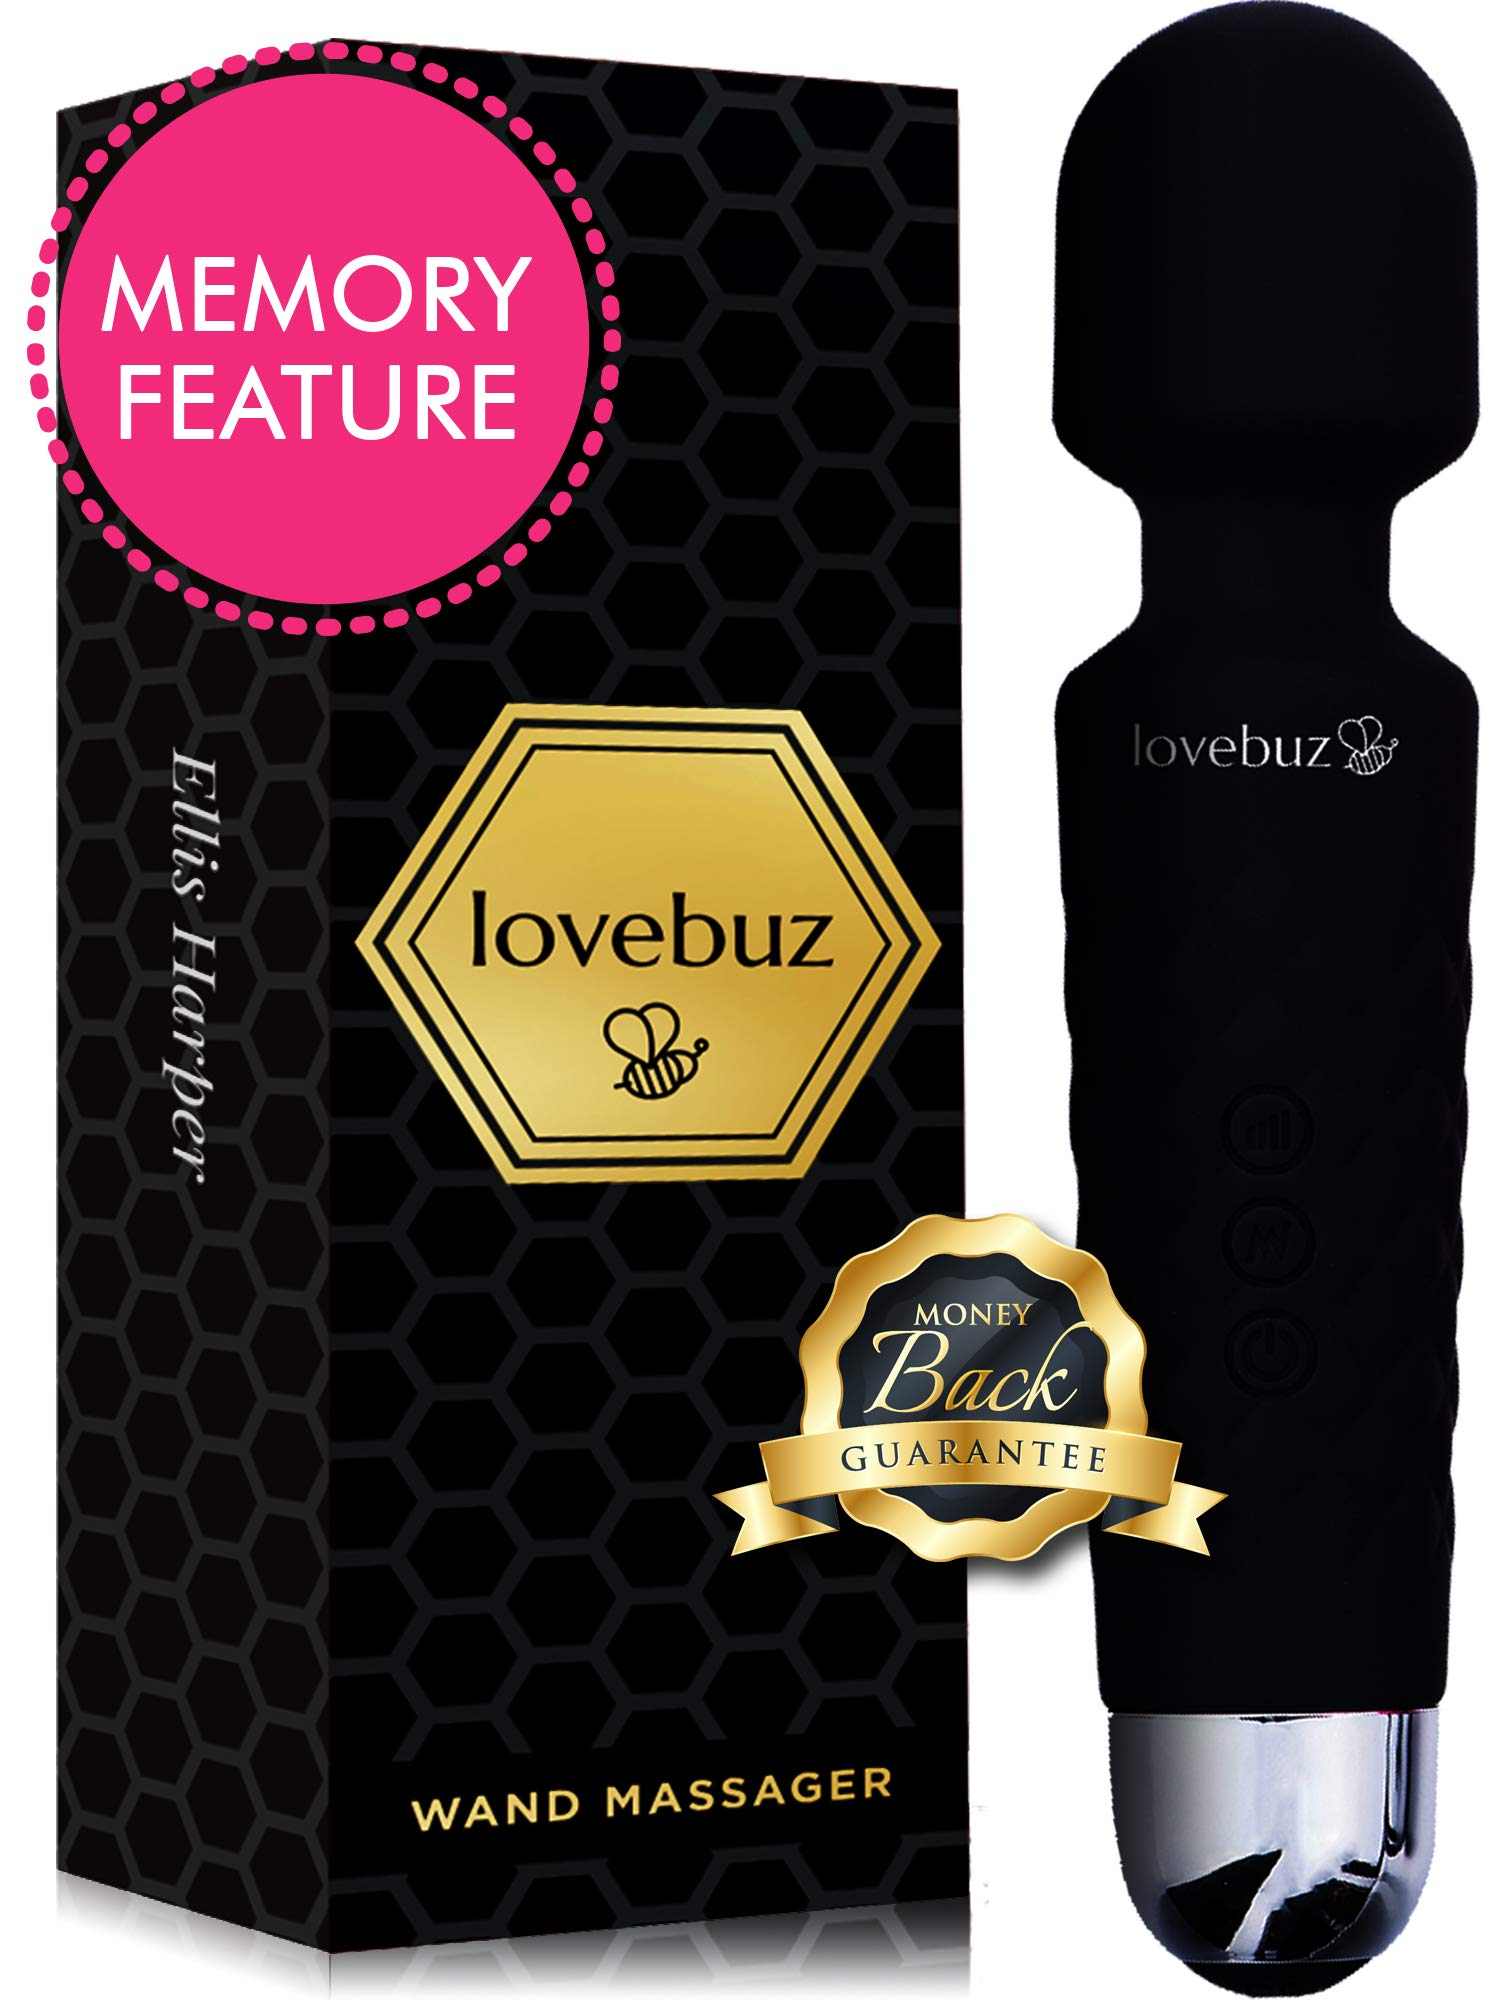 lovebuz 🐝 Personal Wand Massager with 20 Vibration Patterns and Flexible Head Quiet and Waterproof Cordless Handheld Personal Body Massager with Velvet Bag for Sore Muscles and Aches